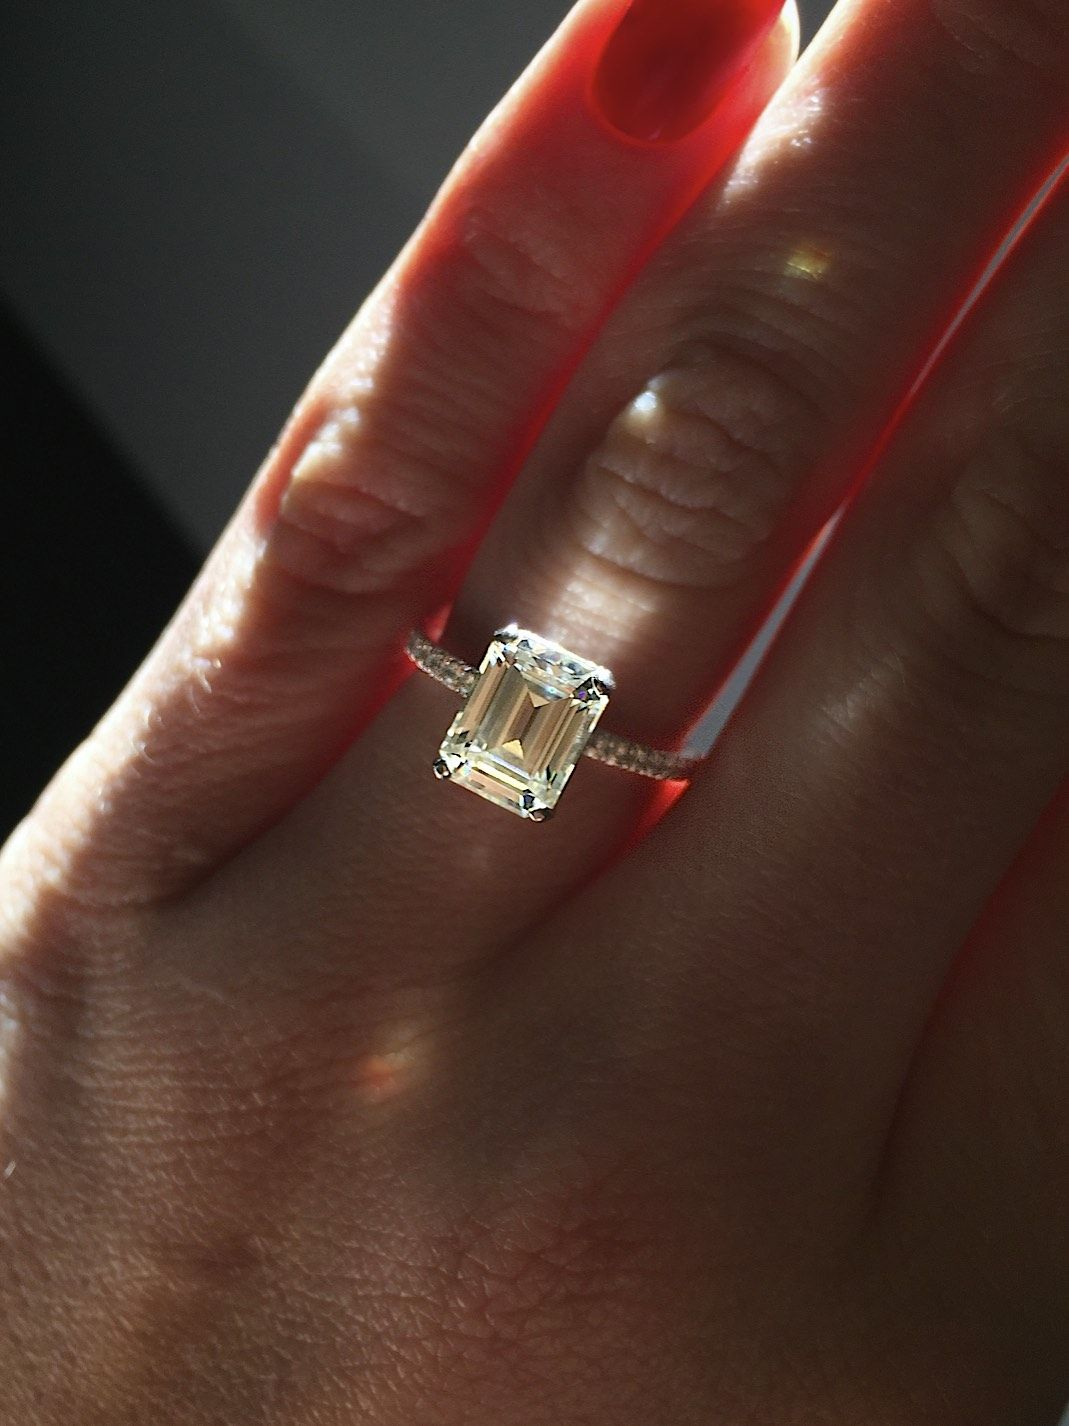 my engagement ring 25 carat emerald cut made by rosados